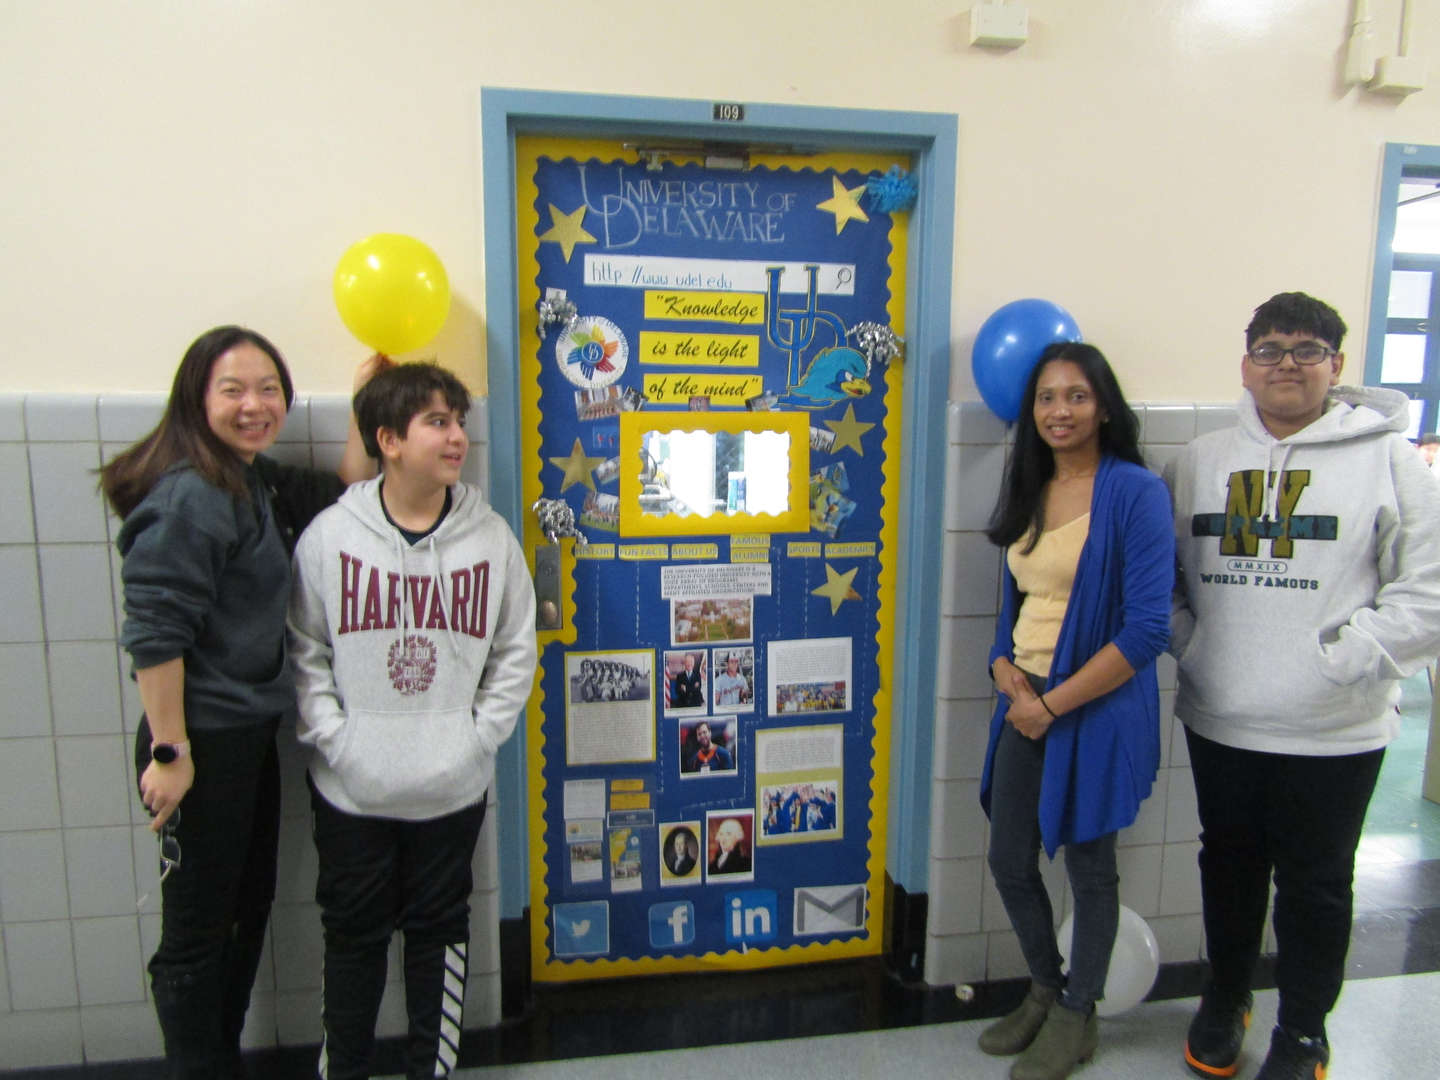 Class 621 won for Most School Spirited for University of Delaware